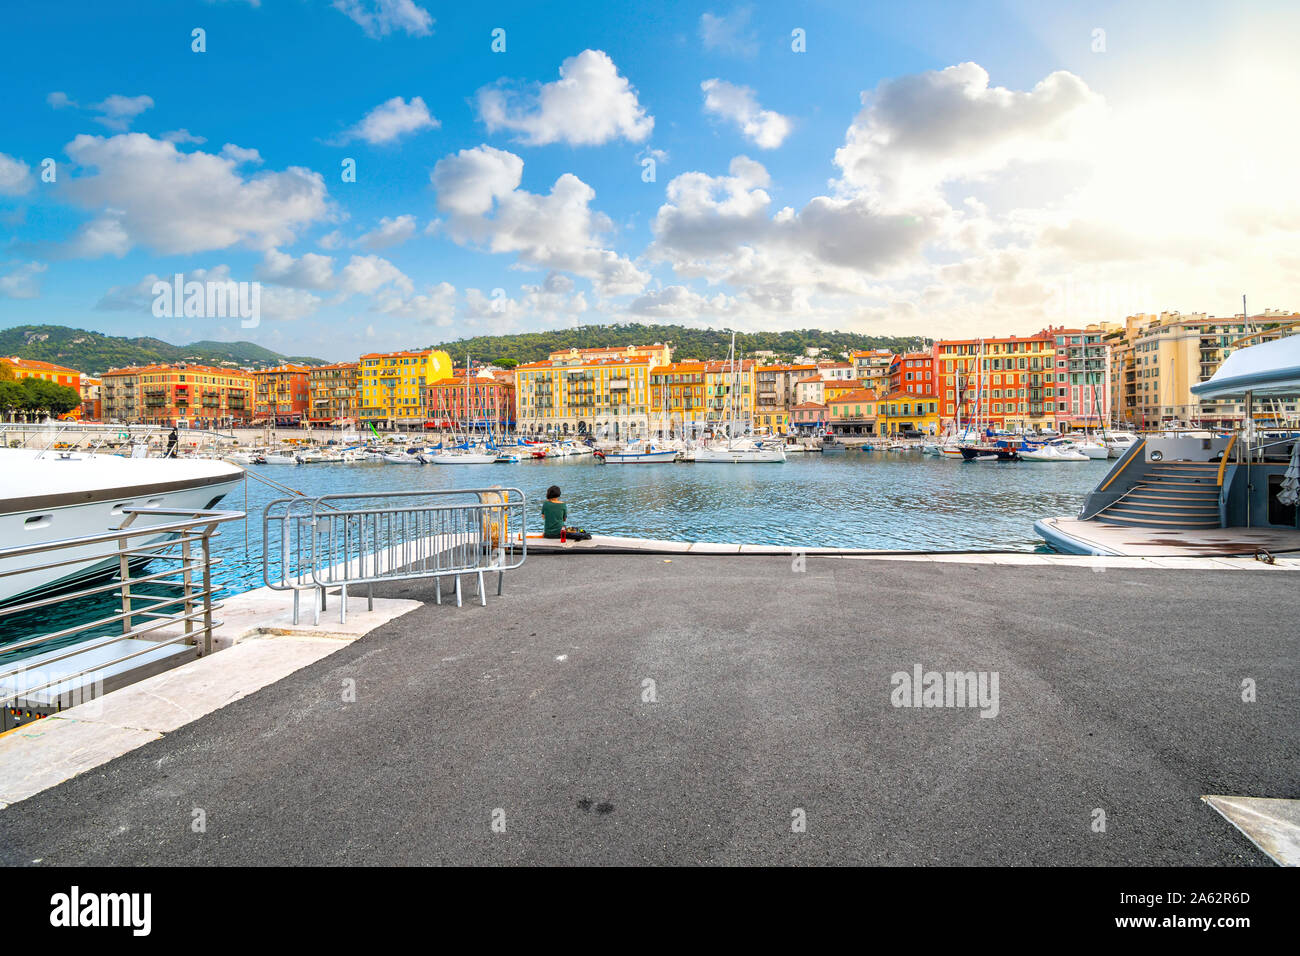 A woman eats her lunch alone along the dock at the colorful old port of the Mediterranean city of Nice, France, along the French Riviera. Stock Photo